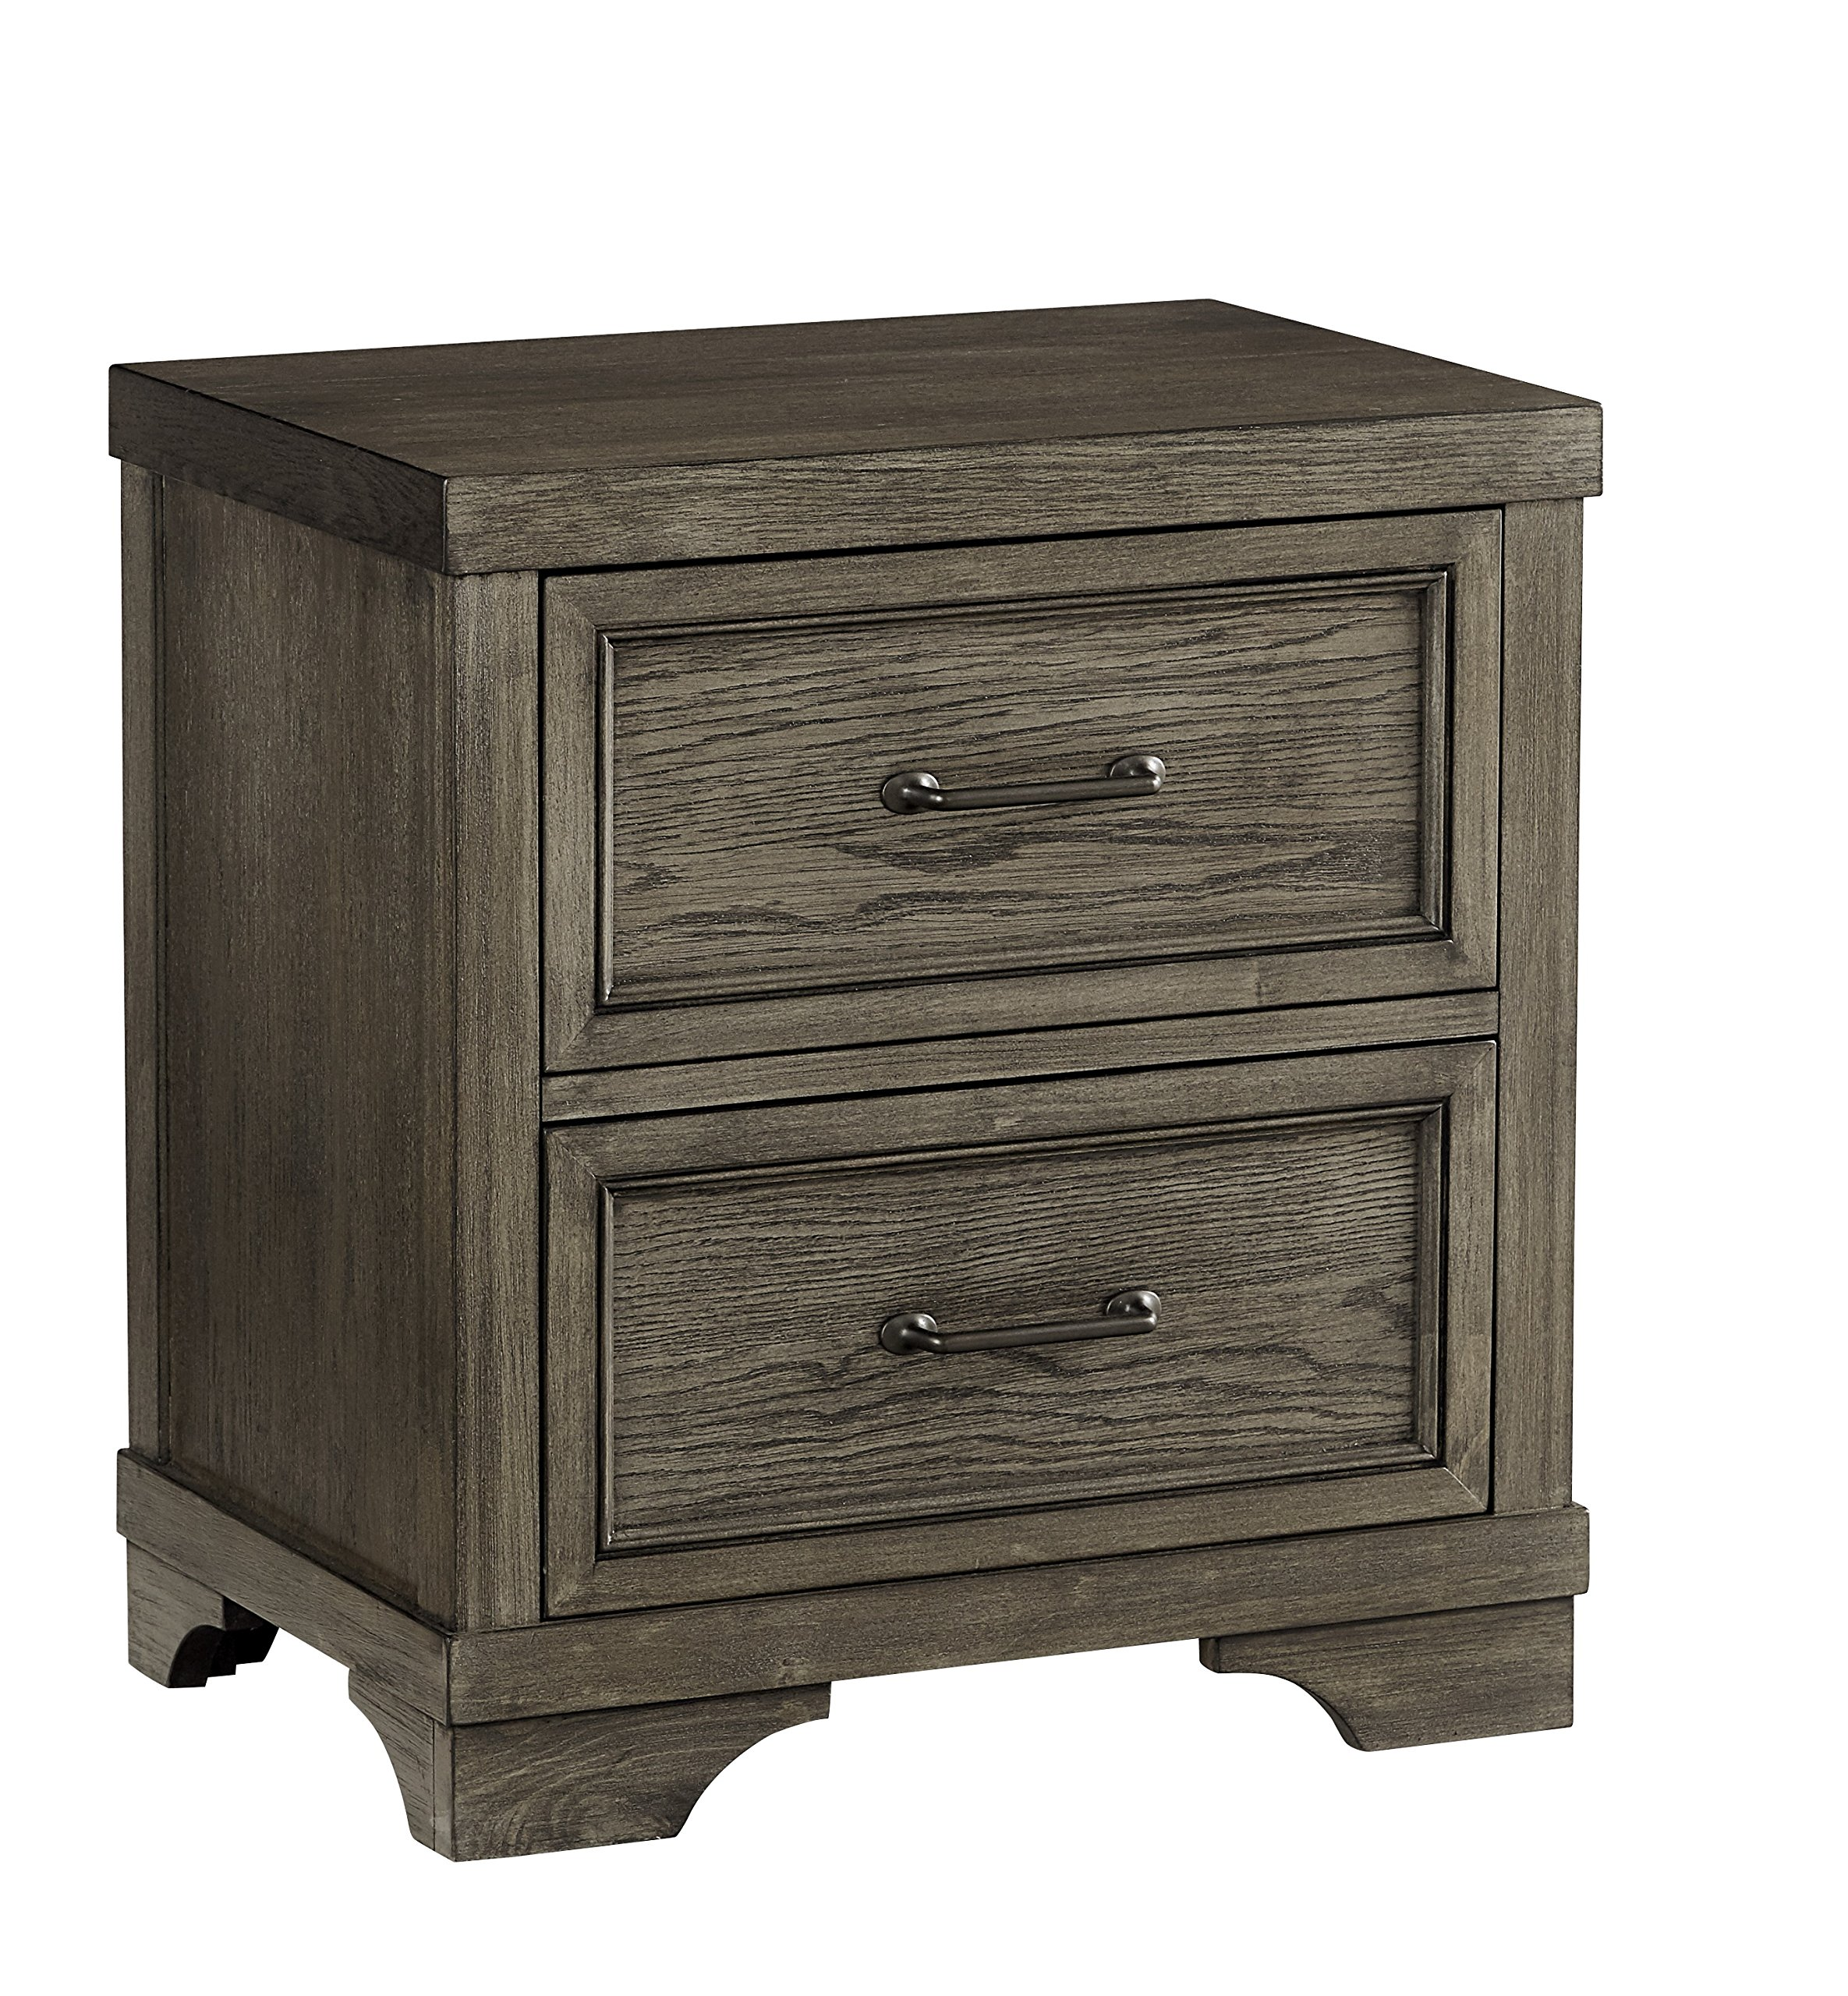 Westwood Design Foundry 2 Drawer Nightstand, Brushed Pewter by Westwood Design